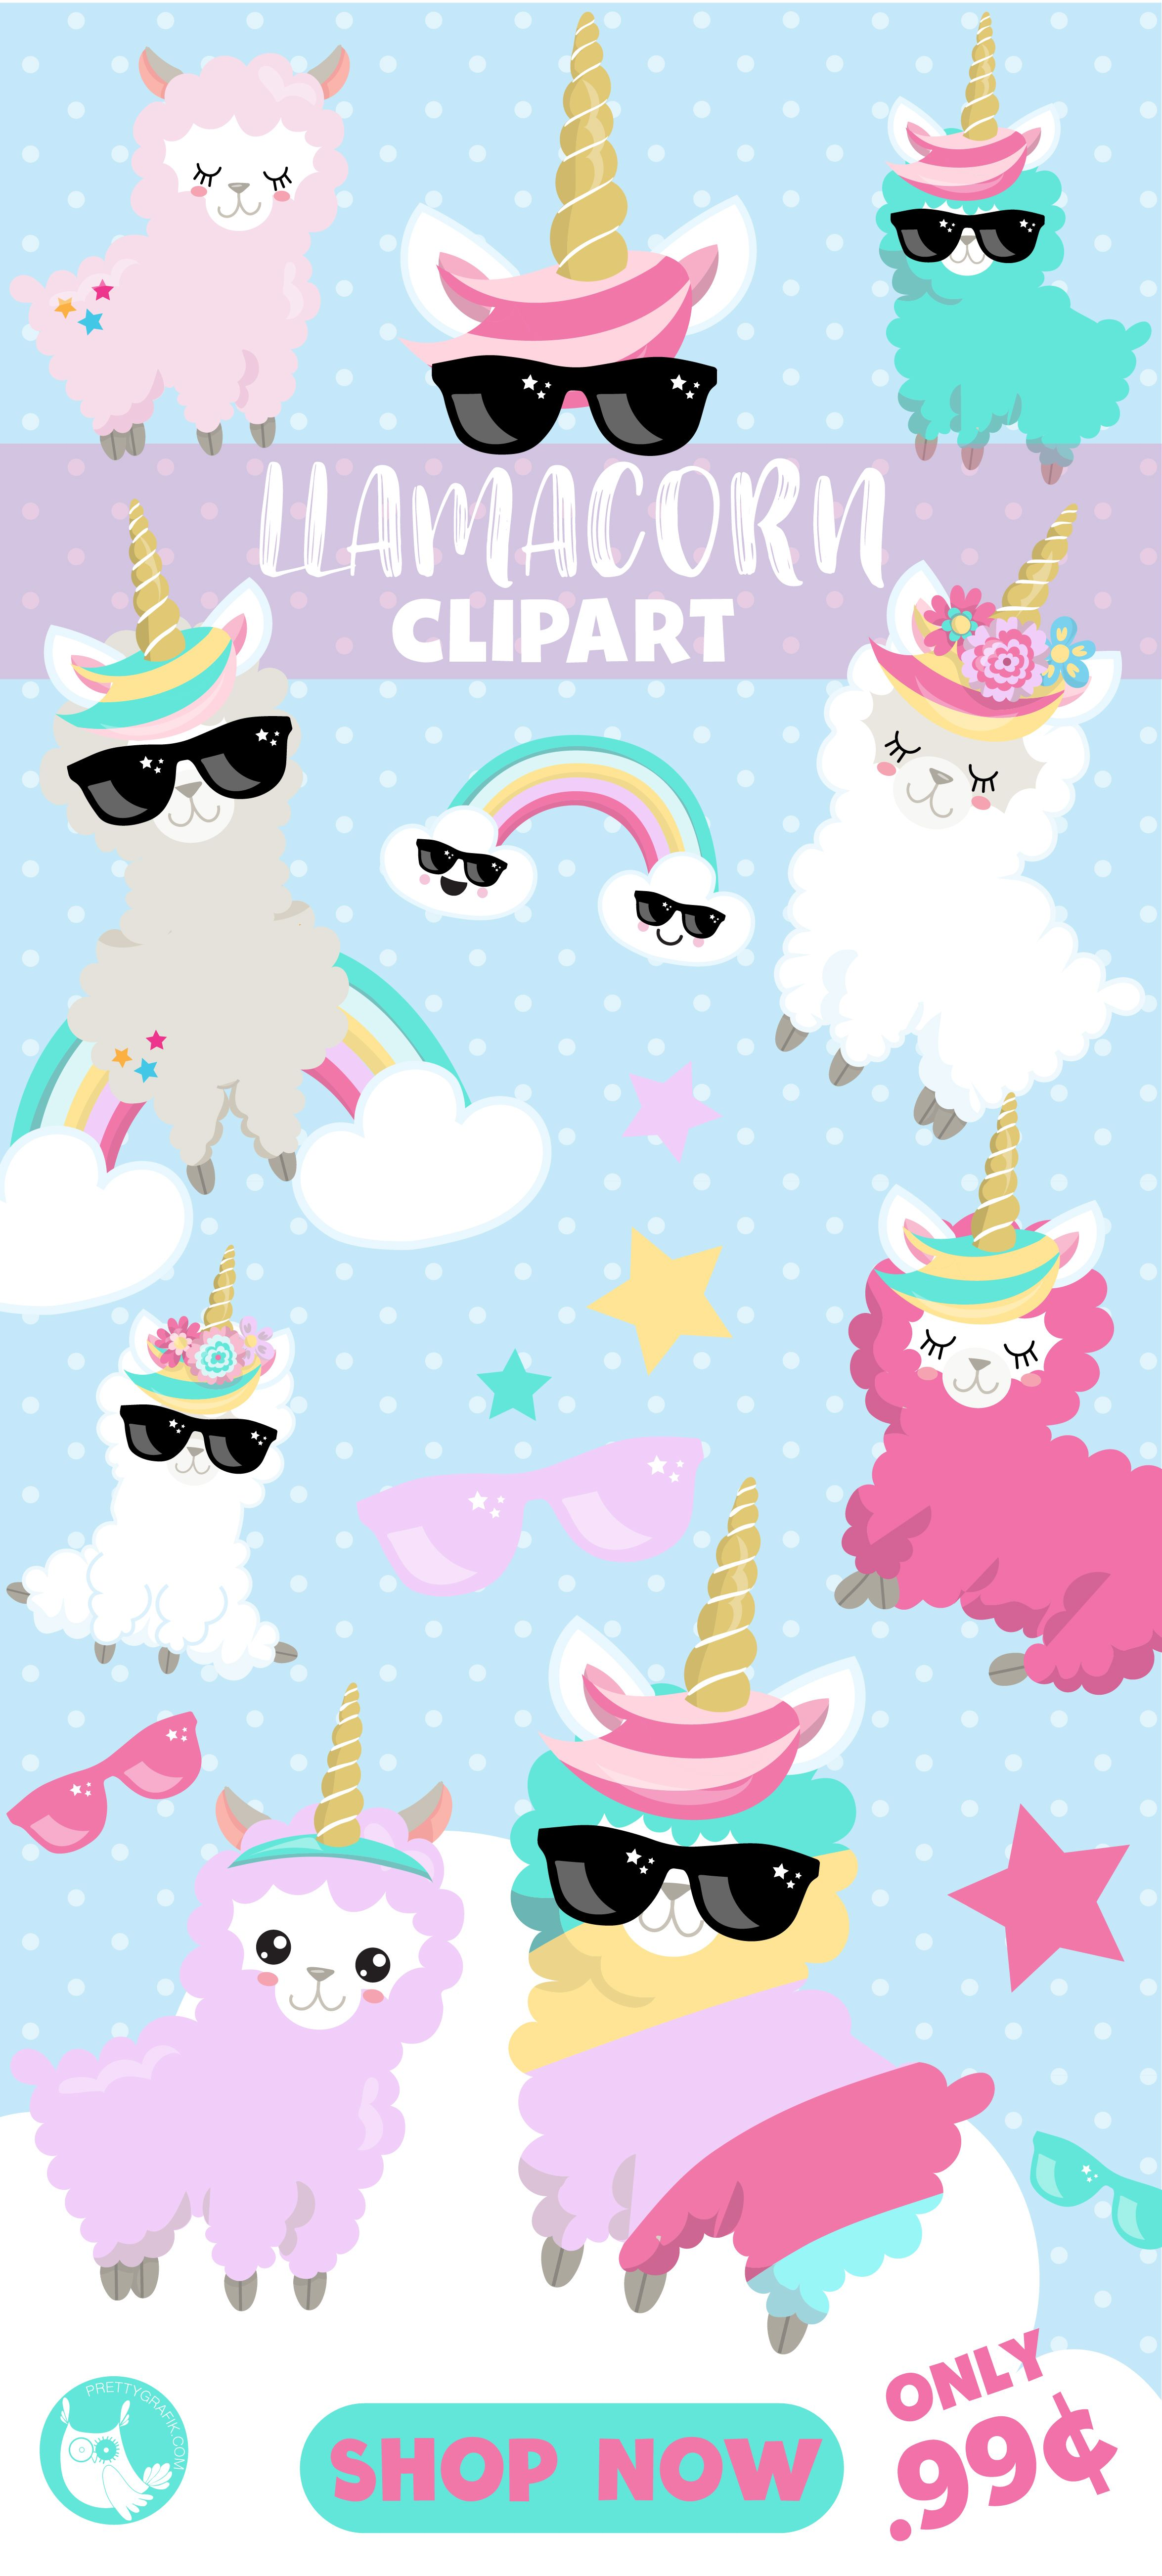 small resolution of llamacorn llama clipart are only 99 and are great to use as party decorations for a llama themed birthday party